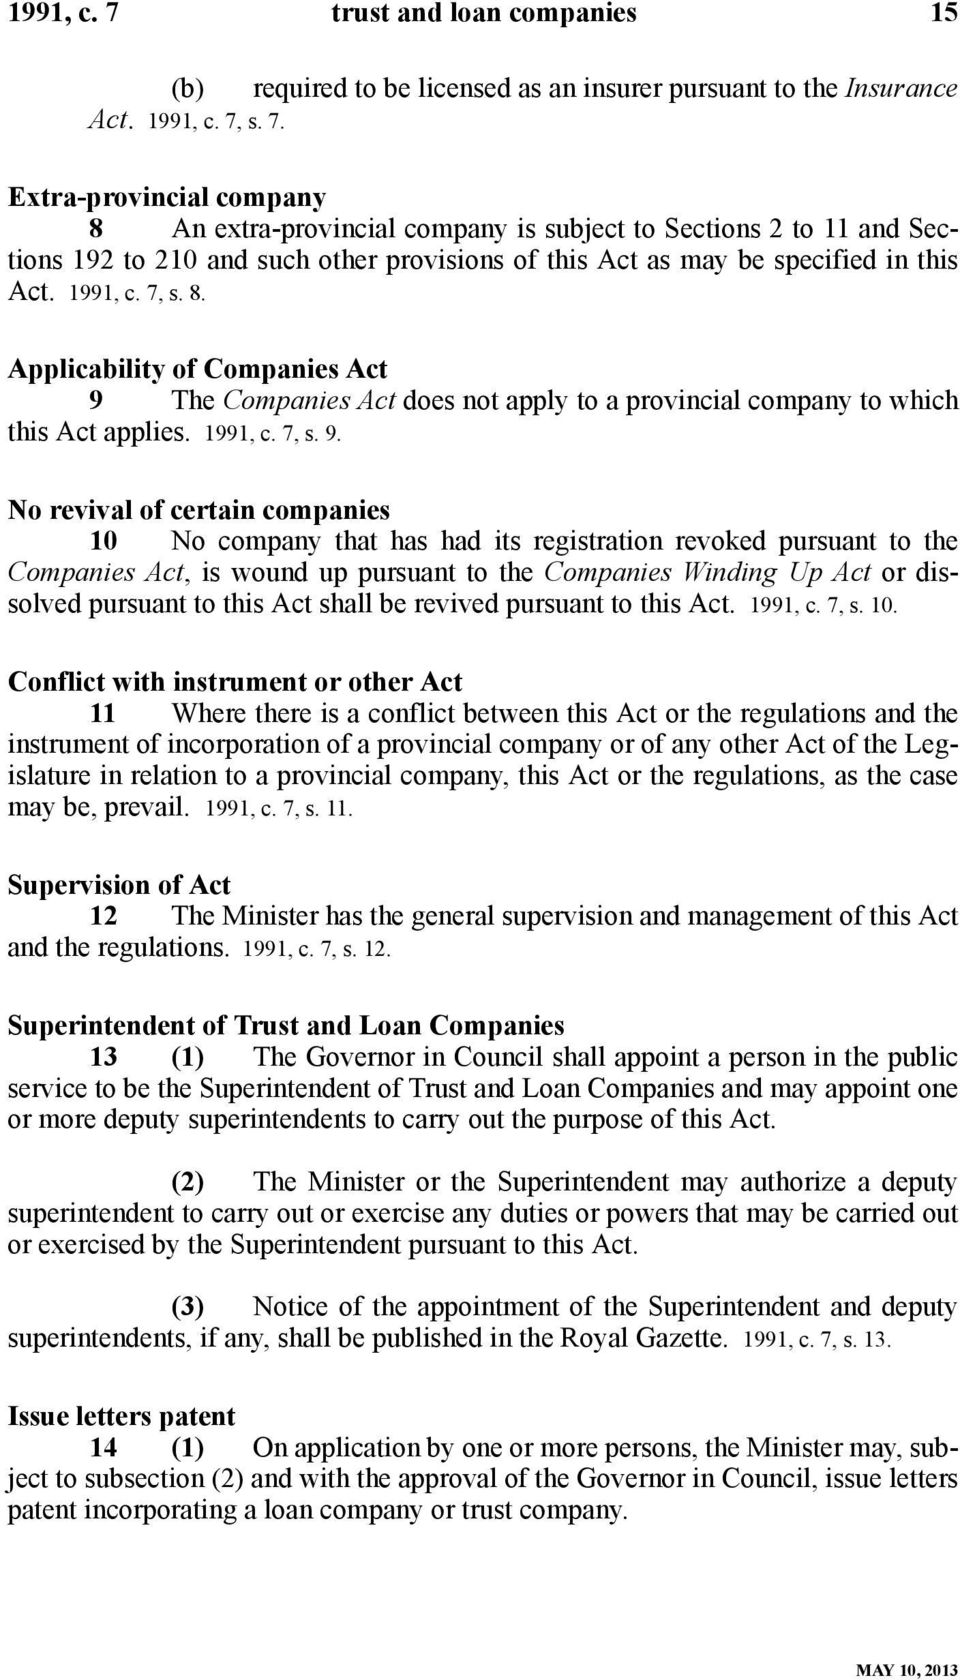 The Companies Act does not apply to a provincial company to which this Act applies. 1991, c. 7, s. 9.